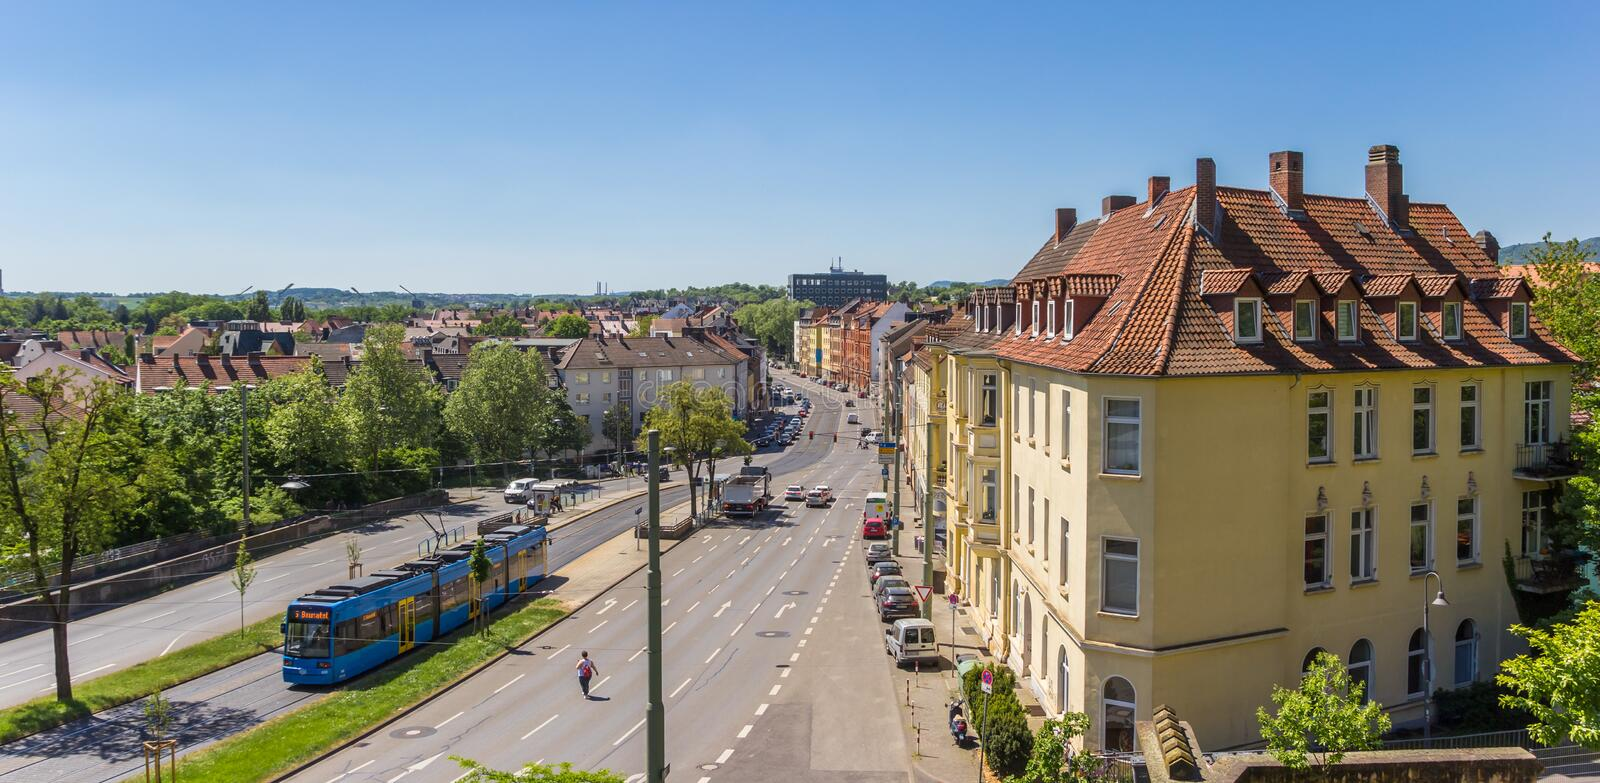 Panorama of Kassel from the Weinberg hill. Panorama of the Frankfurter strasse in Kassel from the Weinberg hill in Germany stock photography